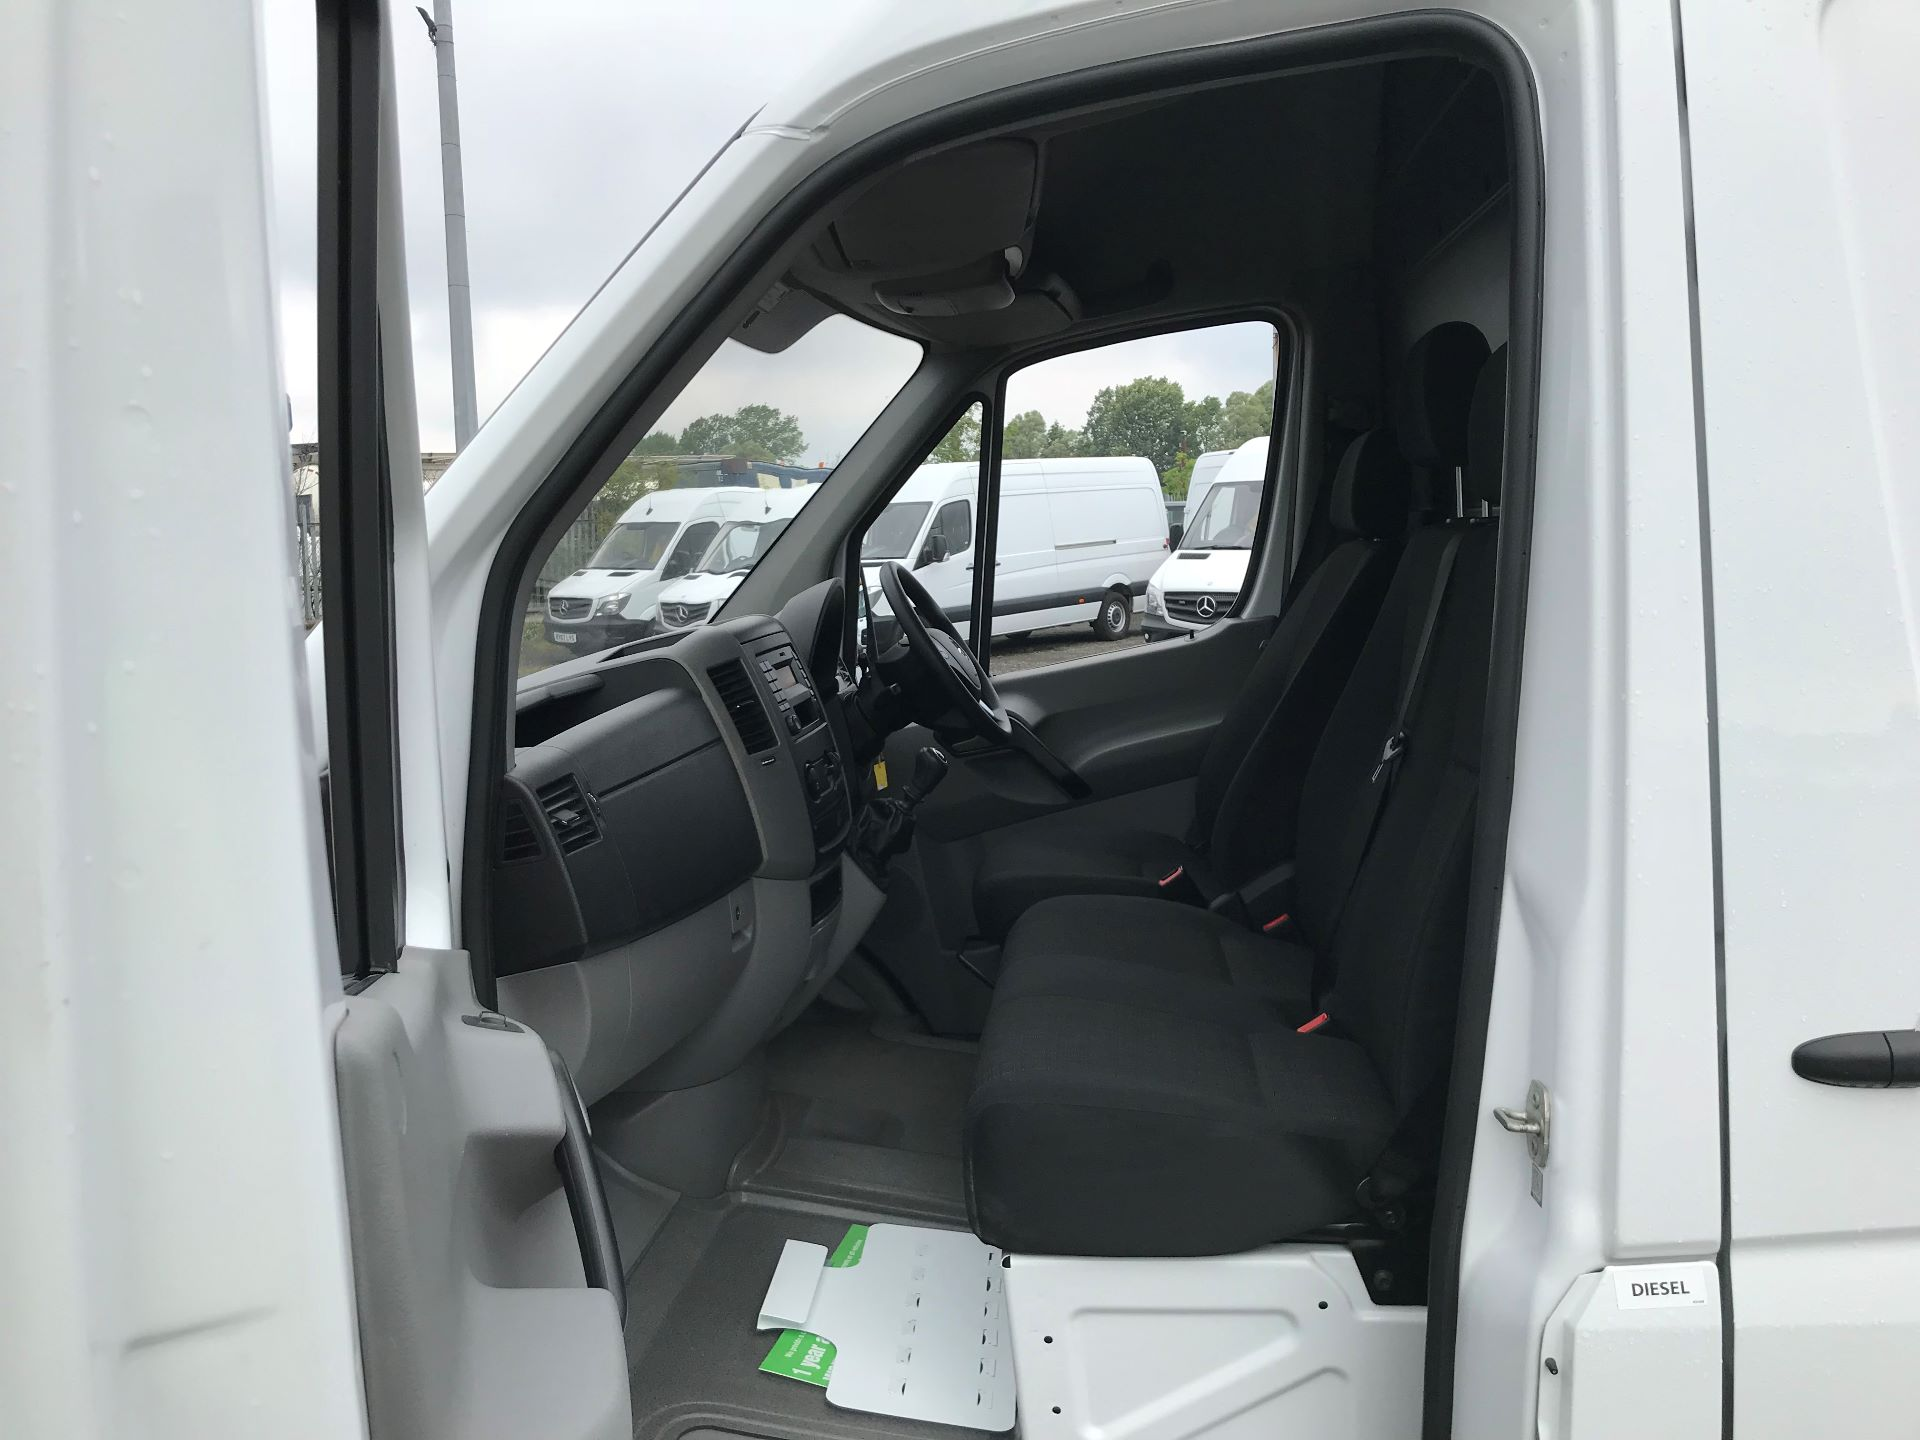 2017 Mercedes-Benz Sprinter 3.5T High Roof Van (KK17BVH) Image 12